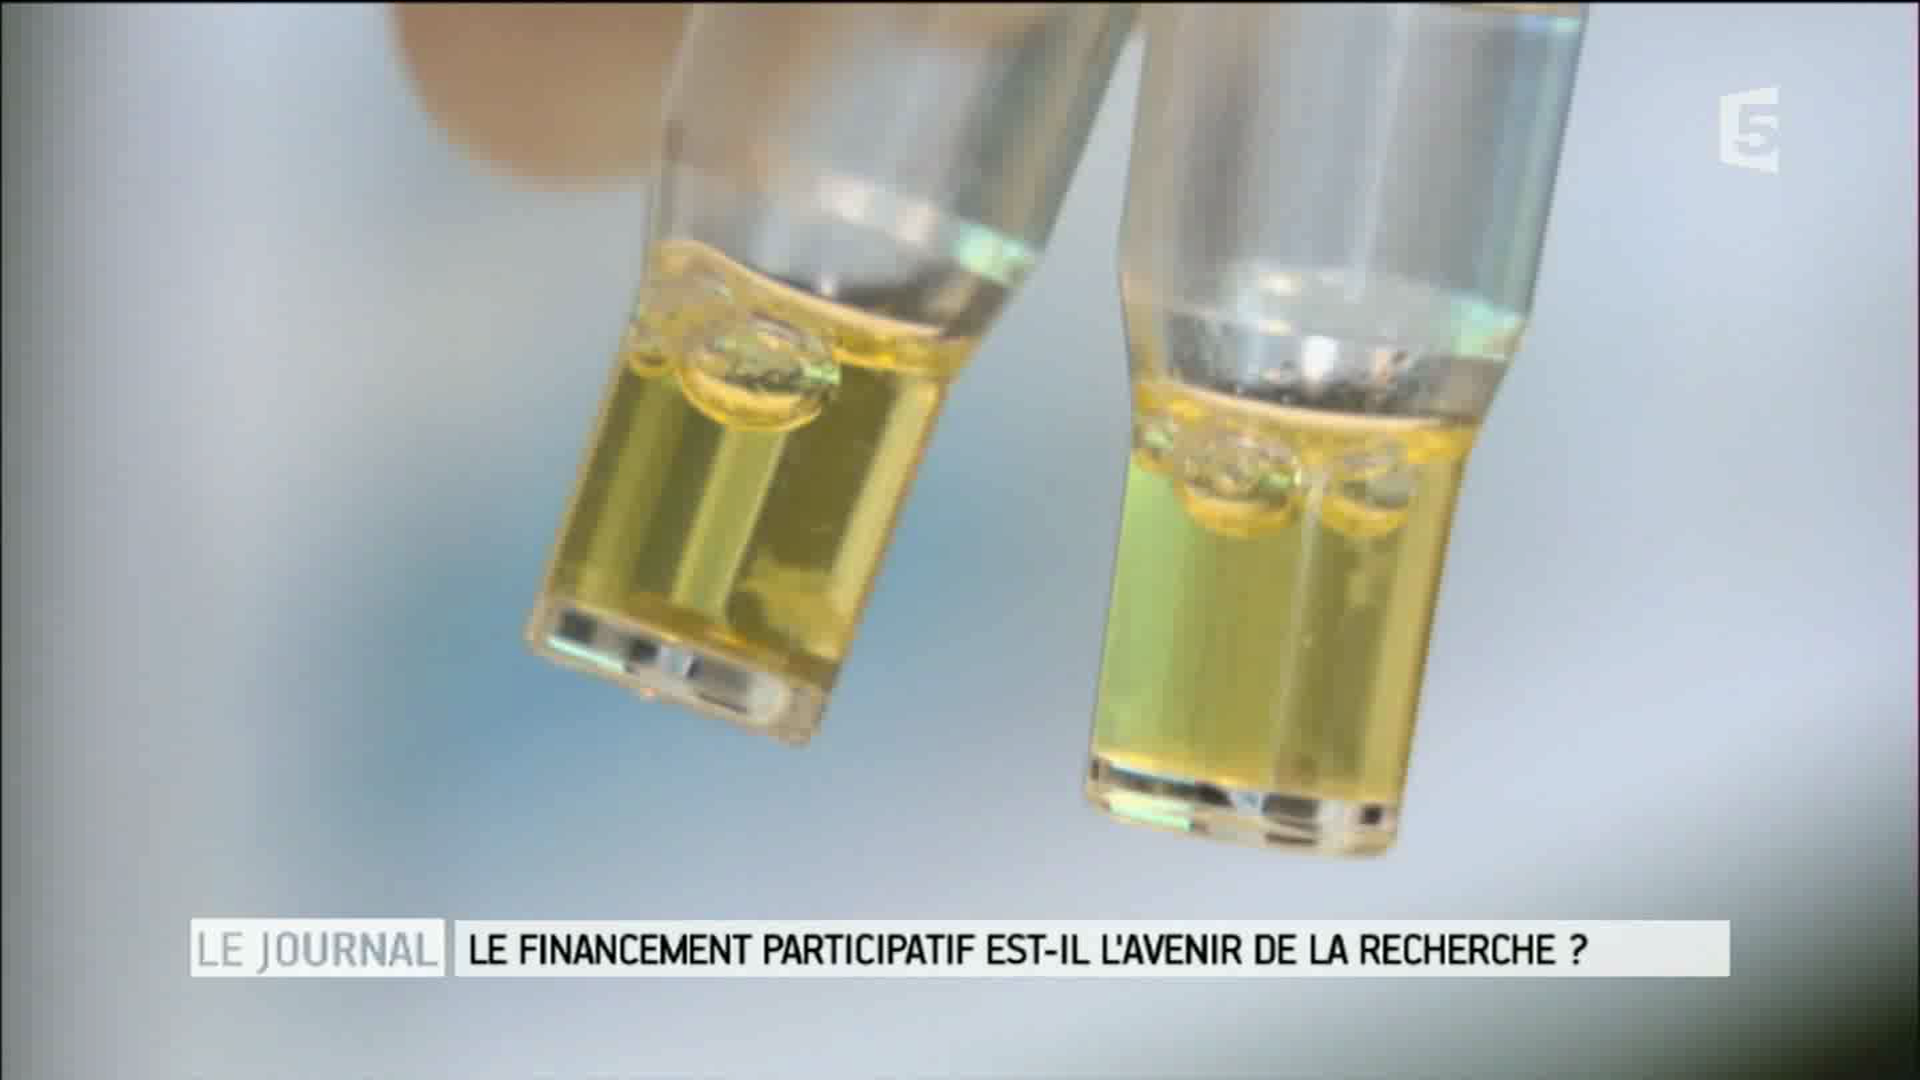 Acticor, a biotech supported by crowdfunding – France 5